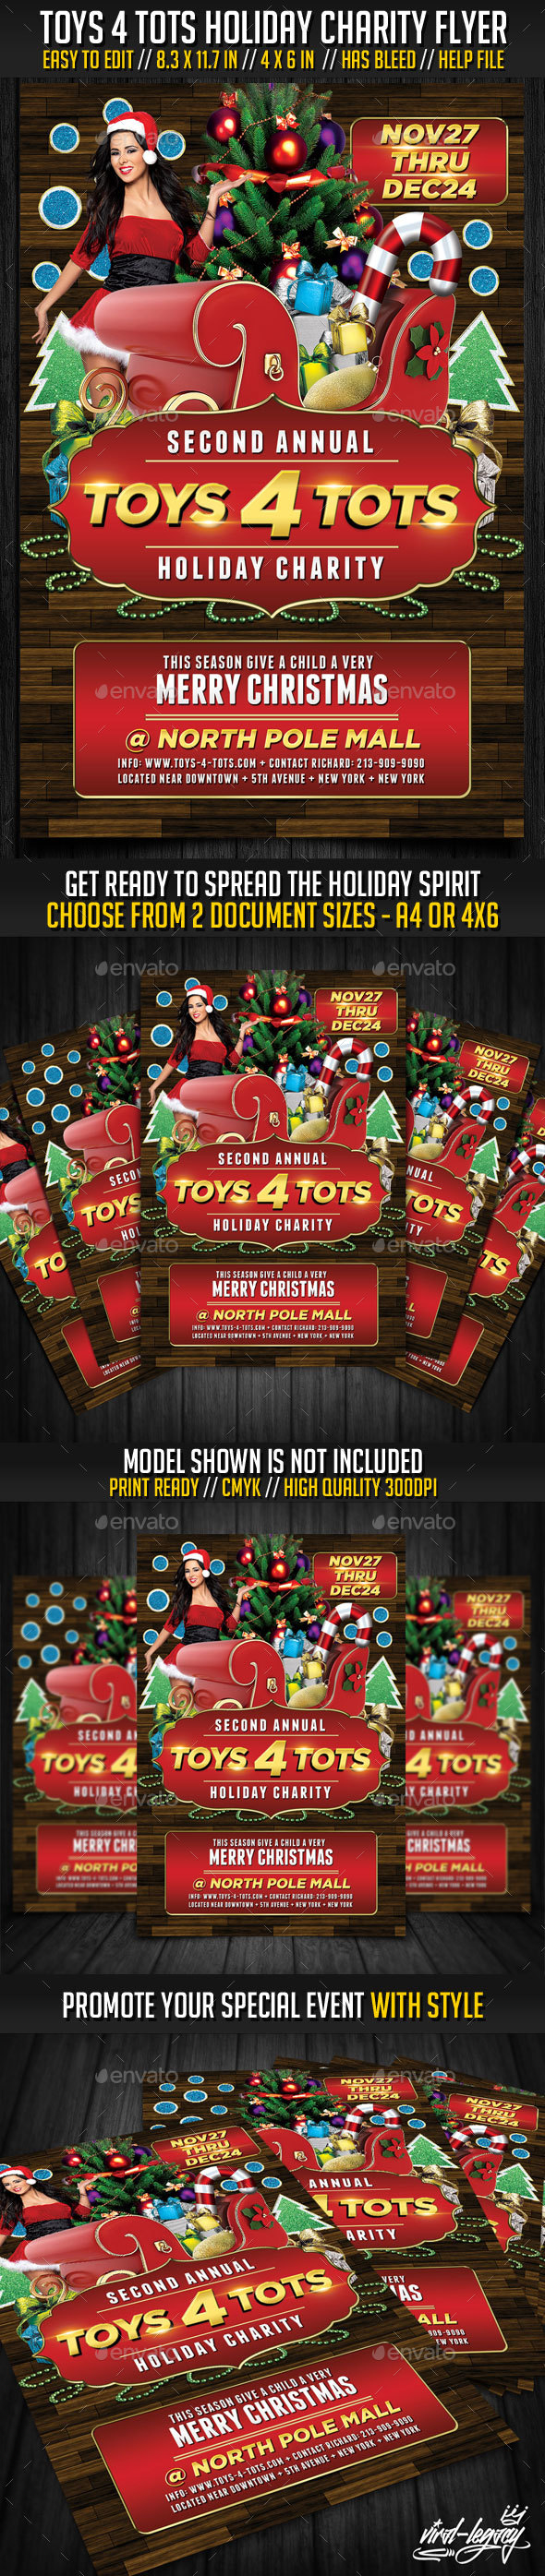 Printable Toys For Tots Logo : Toys tots charity flyer v by viral legacy graphicriver